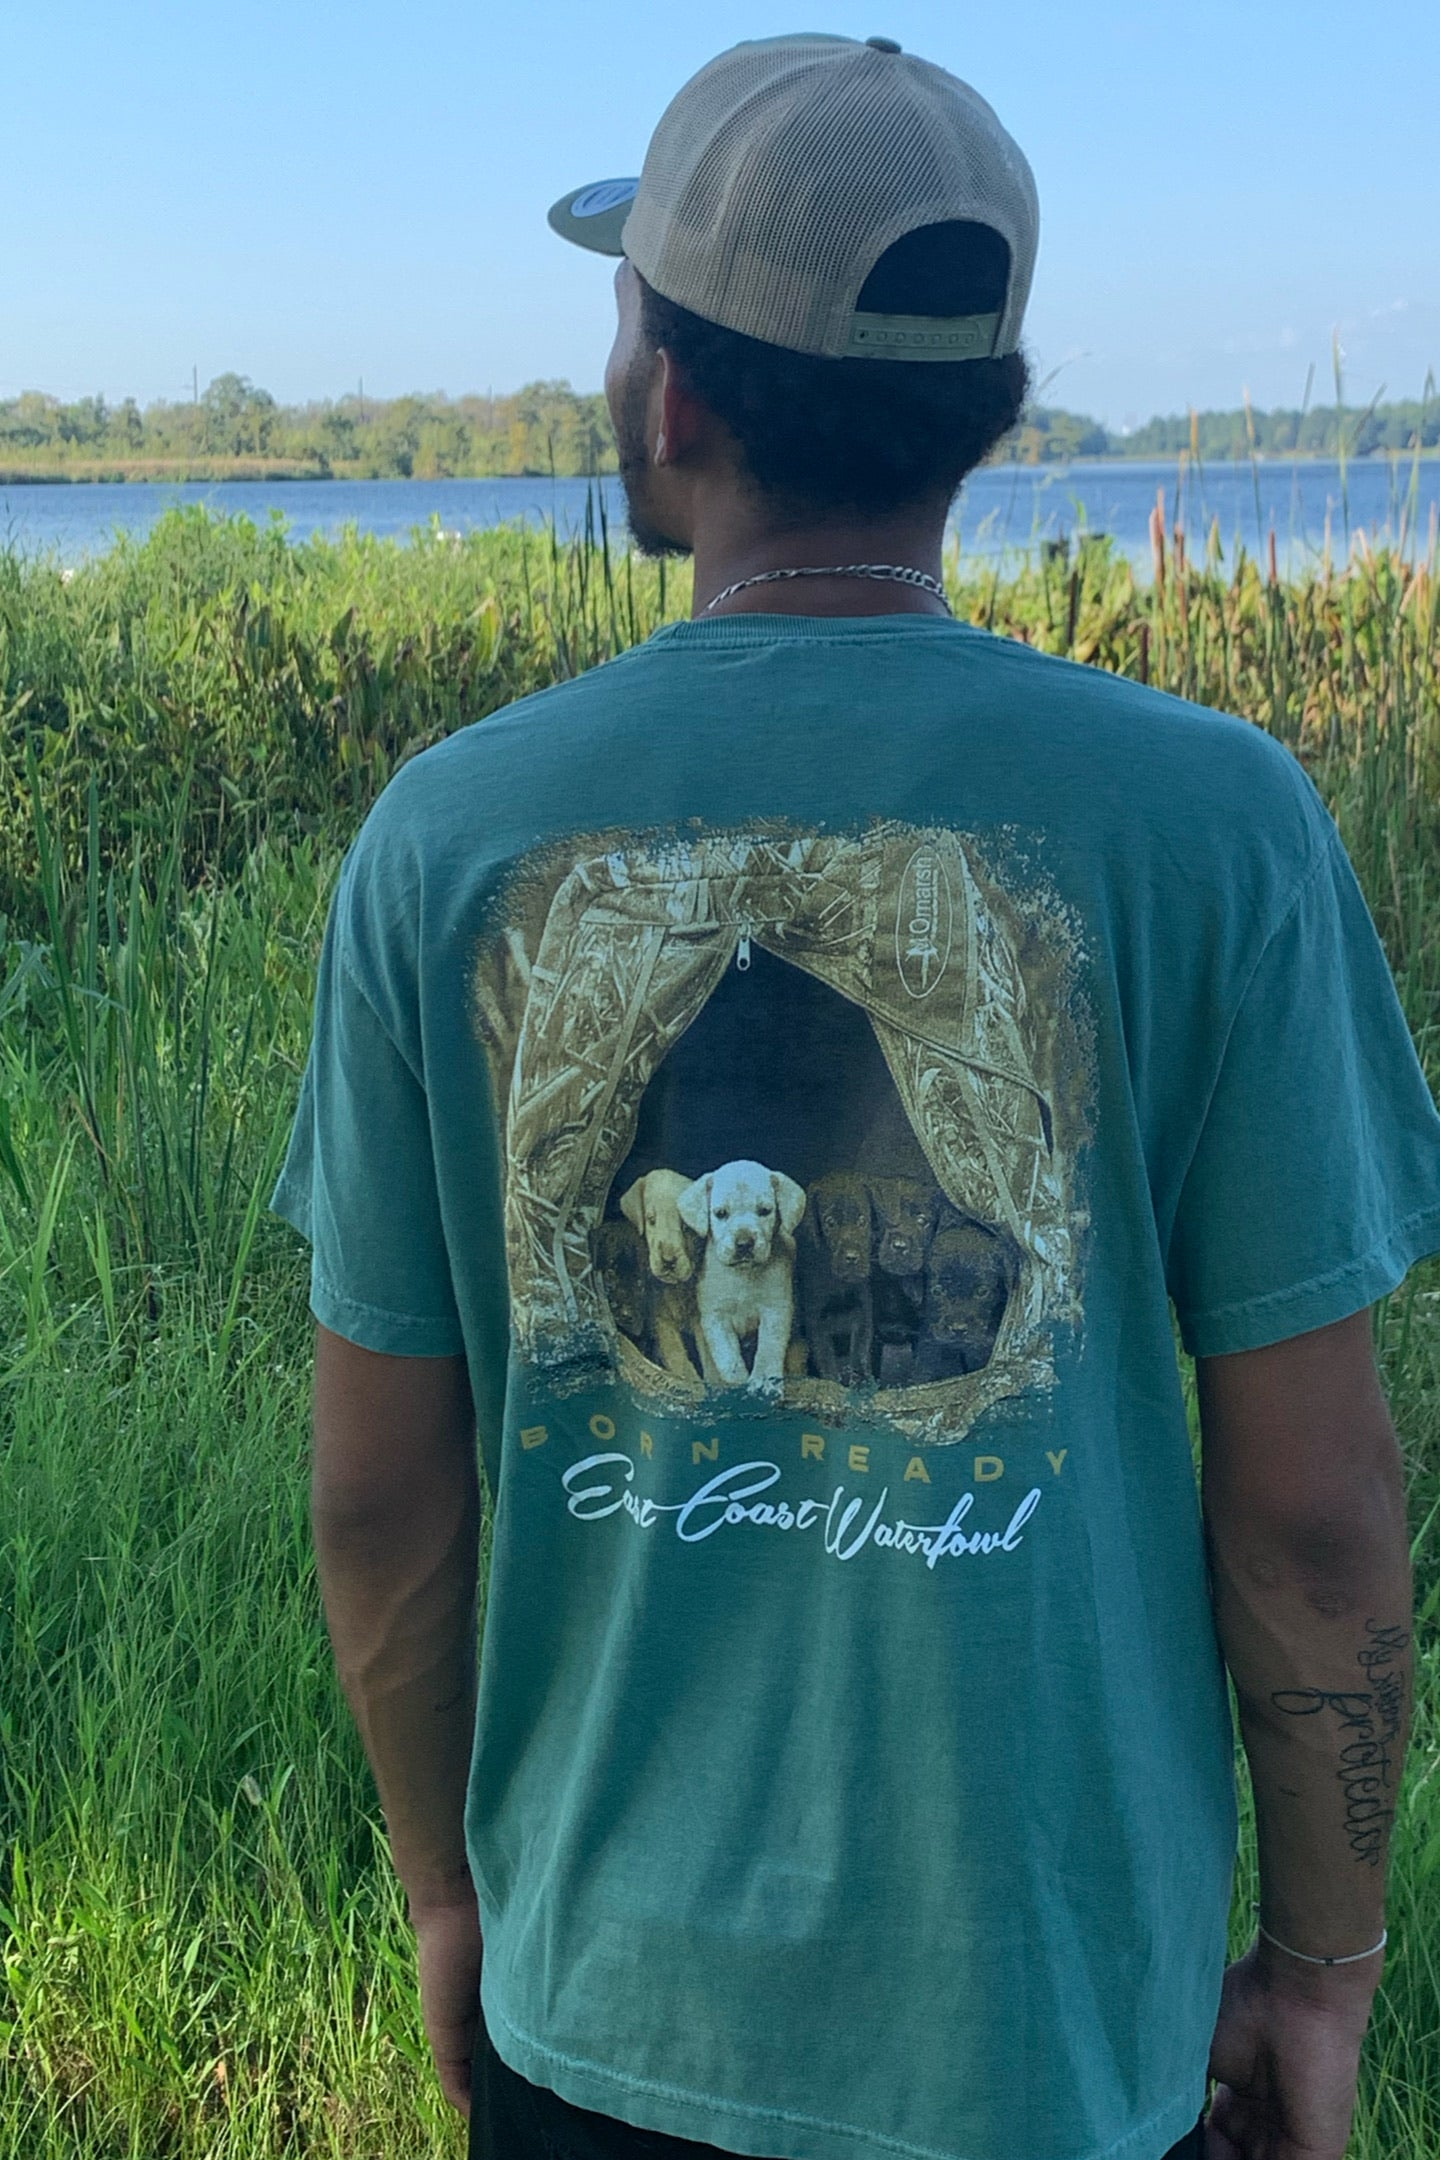 Born Ready Short Sleeve Pocket T-Shirt by East Coast Waterfowl